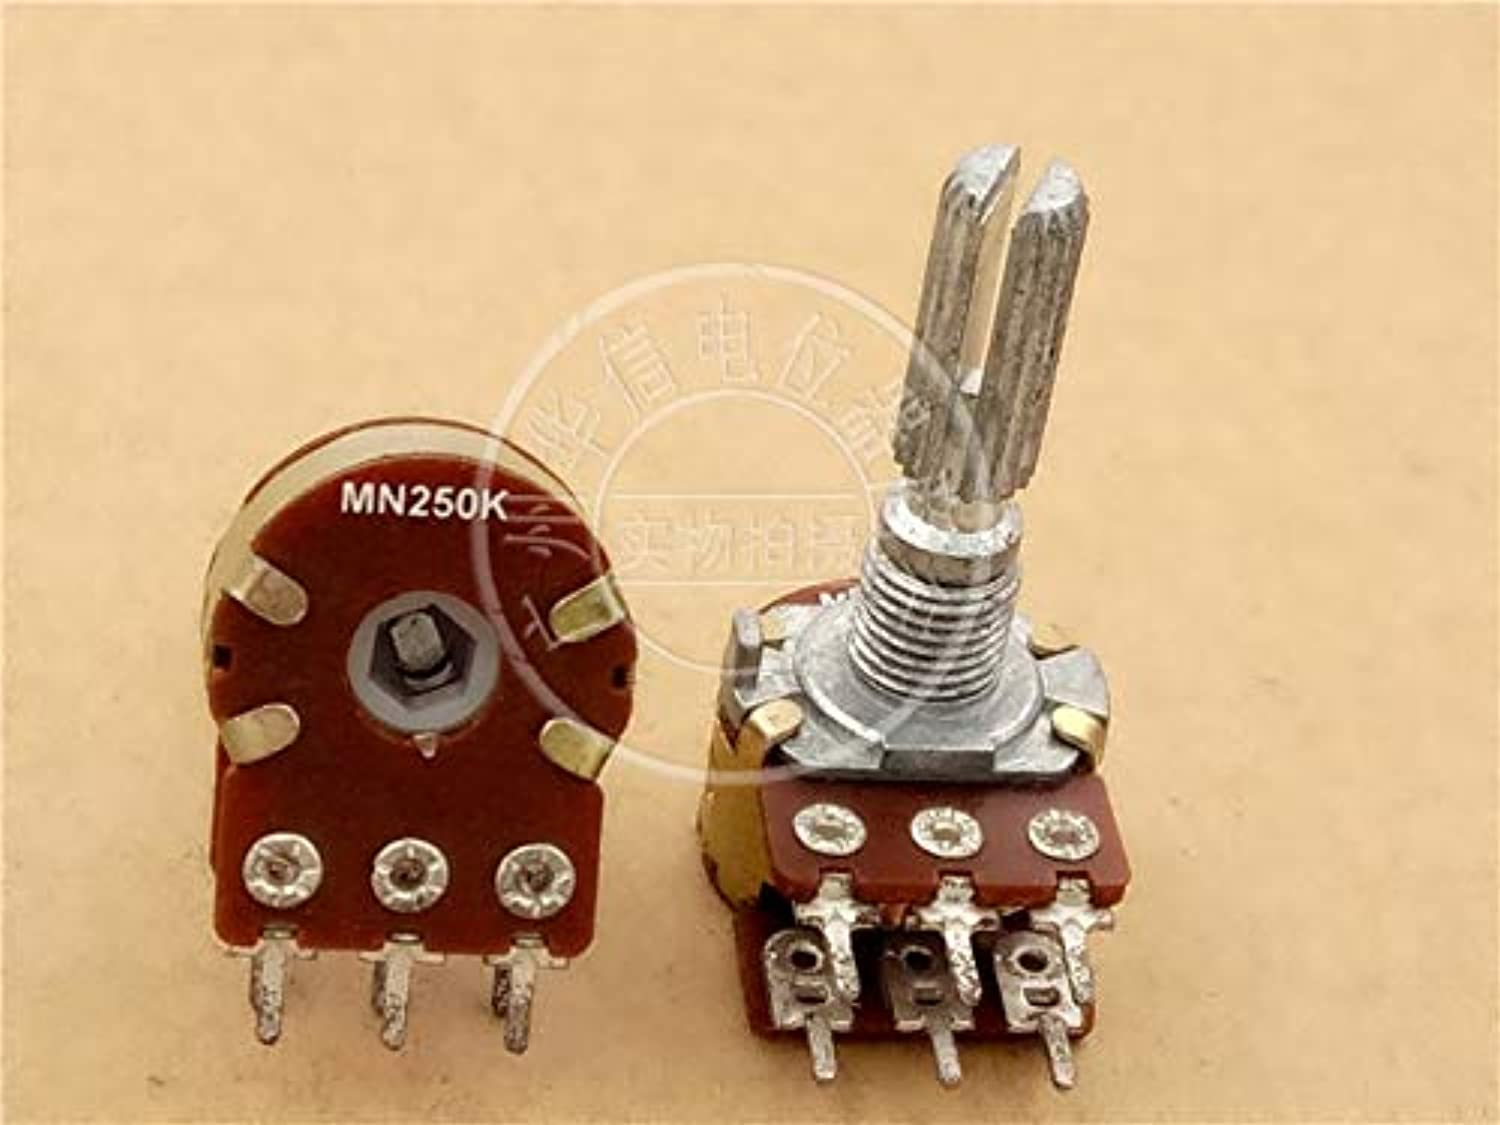 2pcs Taiwan Double Balance Potentiometer MN250K   with Midpoint Middle Back to Zero   25MM Handle Knurled Shaft